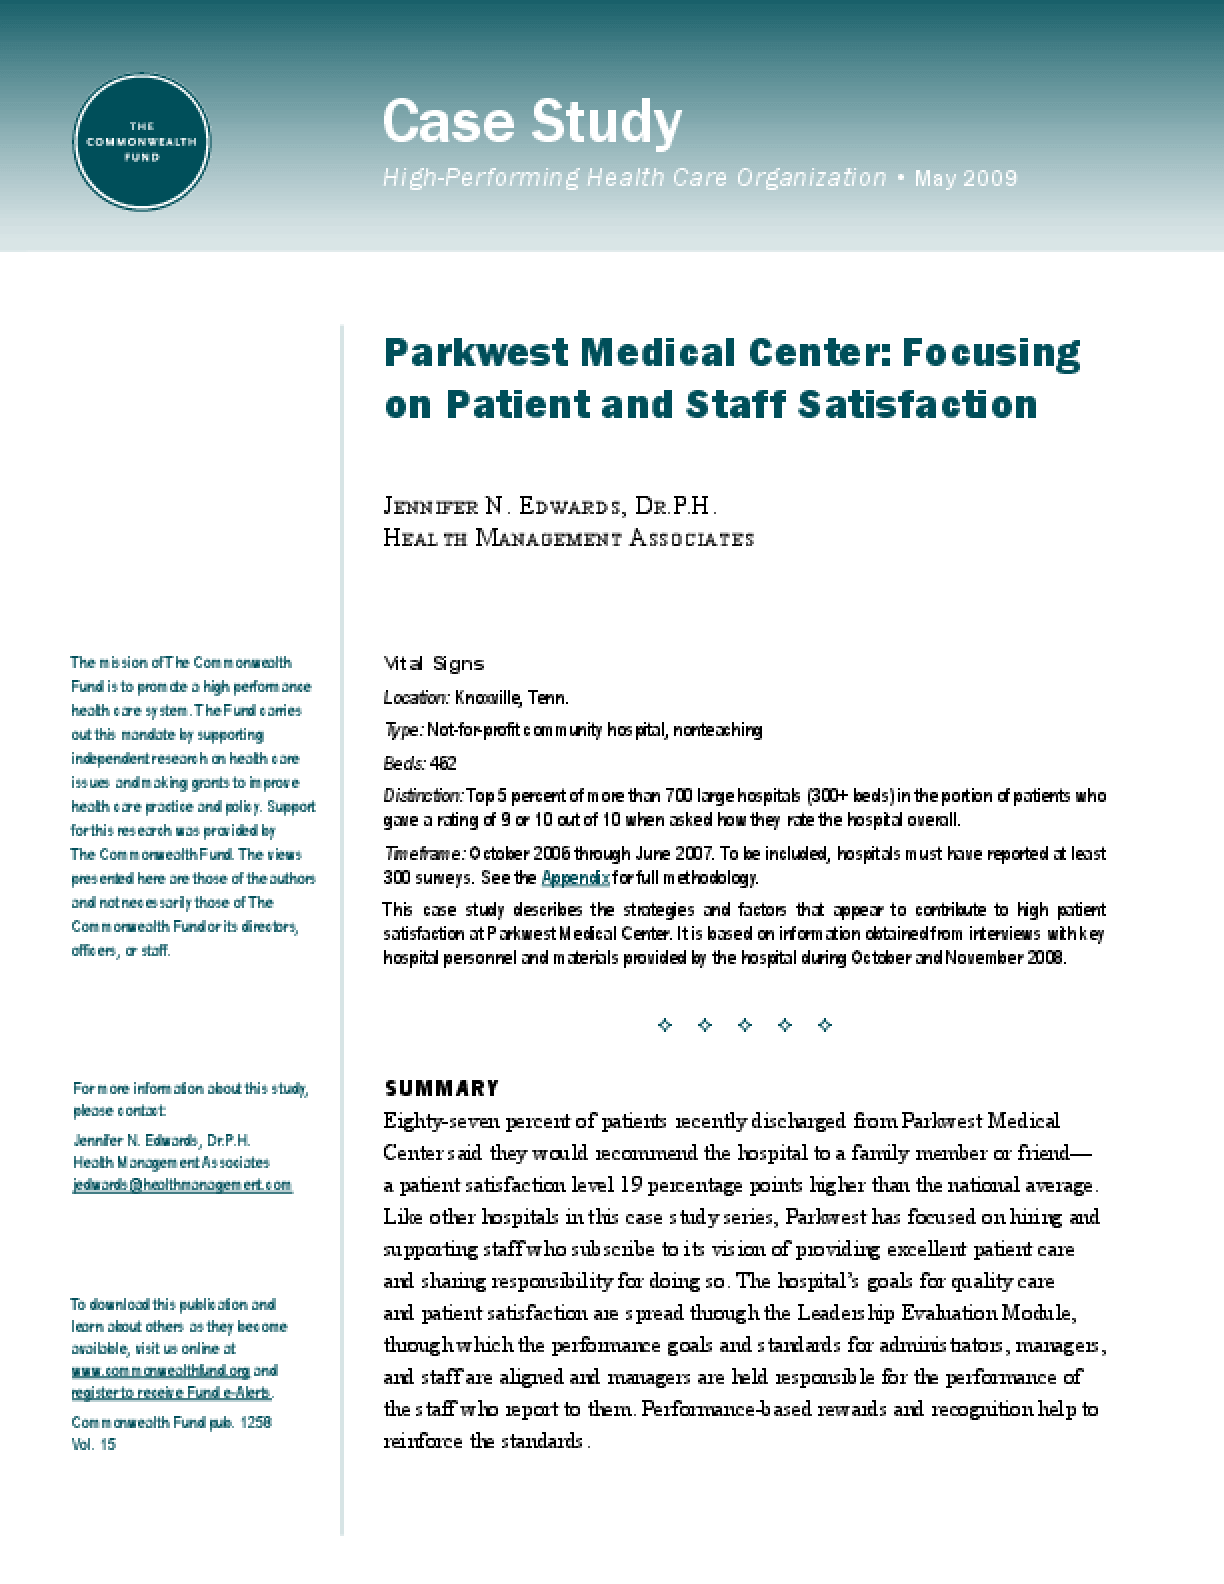 Parkwest Medical Center: Focusing on Patient and Staff Satisfaction